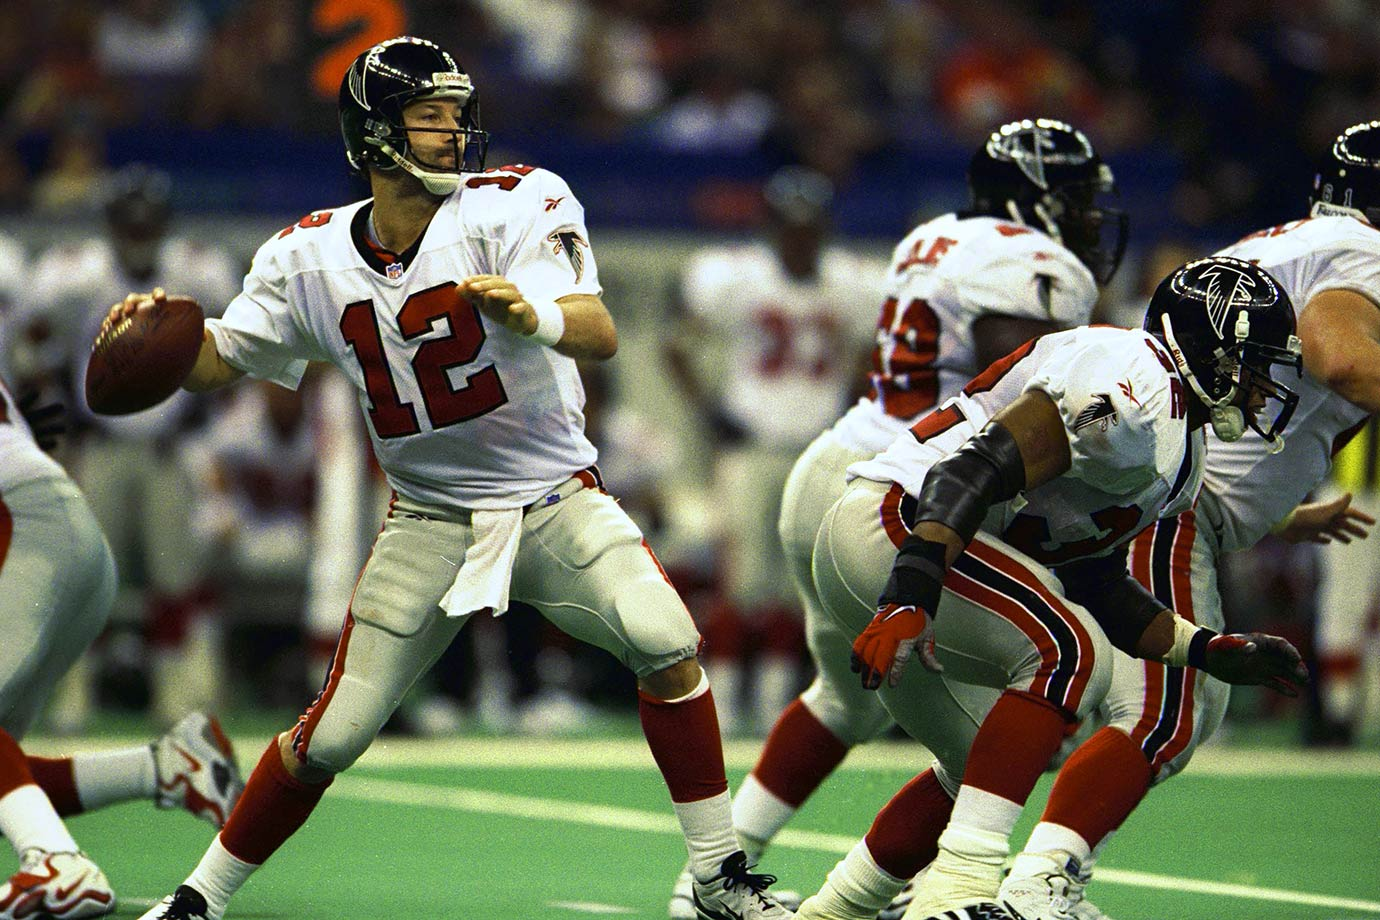 Quarterback Chris Chandler and running back Jamal Anderson helped the Falcons win their final nine in 1998, even with second-year head coach Dan Reeves missing Weeks 15 and 16 after undergoing quadruple bypass surgery. The winning ways continued all the way to the first Super Bowl appearance in franchise history, but ended with a 34-19 loss to the Broncos. The 1980 Falcons also won nine in a row, led by quarterback Steve Bartkowski, and almost ran their streak to 10, but lost 20-17 in overtime to the Rams in the final regular season game of the year.